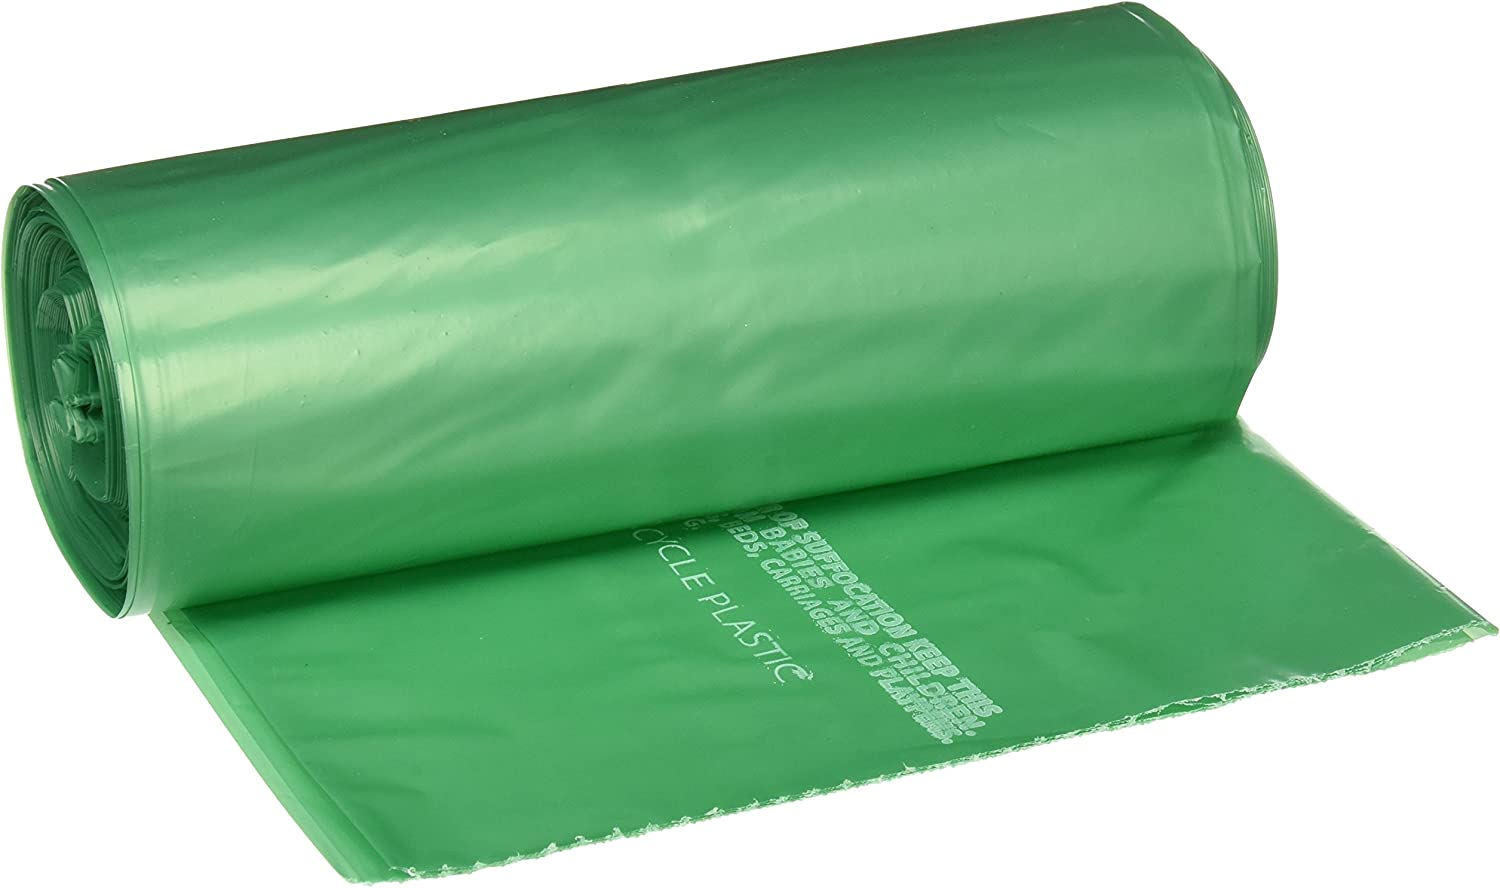 """STOUT by Envision G3340E11 Controlled Life-Cycle Plastic Bags, 33"""" x 40"""", 33 gal Capacity, 1.10 mil Thickness, Green (Pack of 40)"""